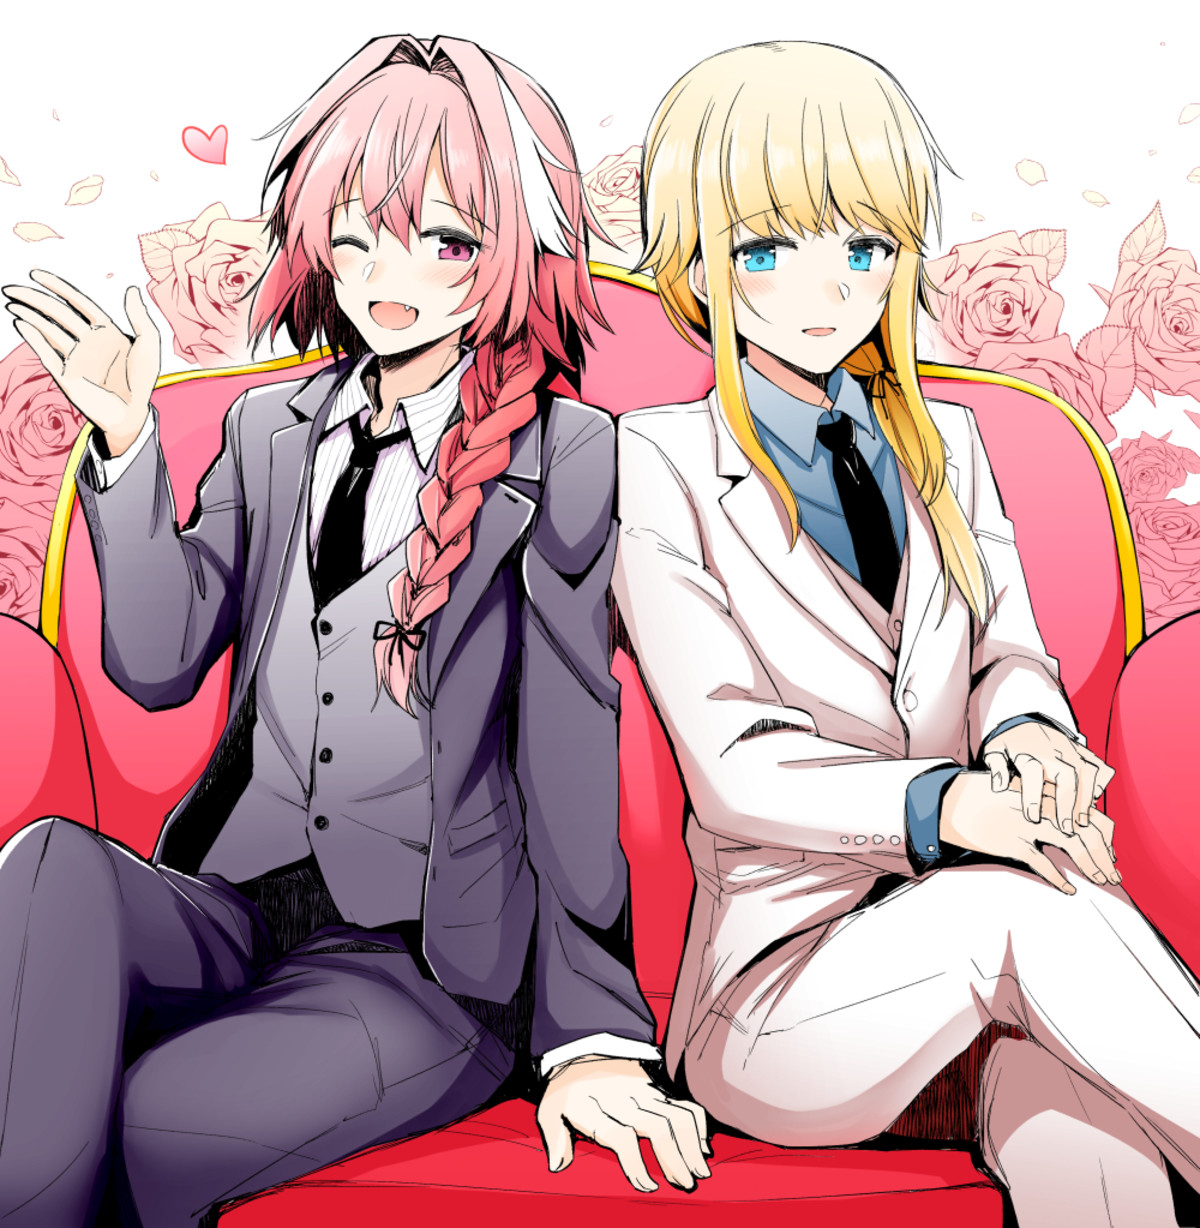 Astolfo & Chevalier in Suits. Source illust.php?mode=medium&illustid=70599868 join list: Fate (419 subs)Mention History join list:. join list: MeganeMention History